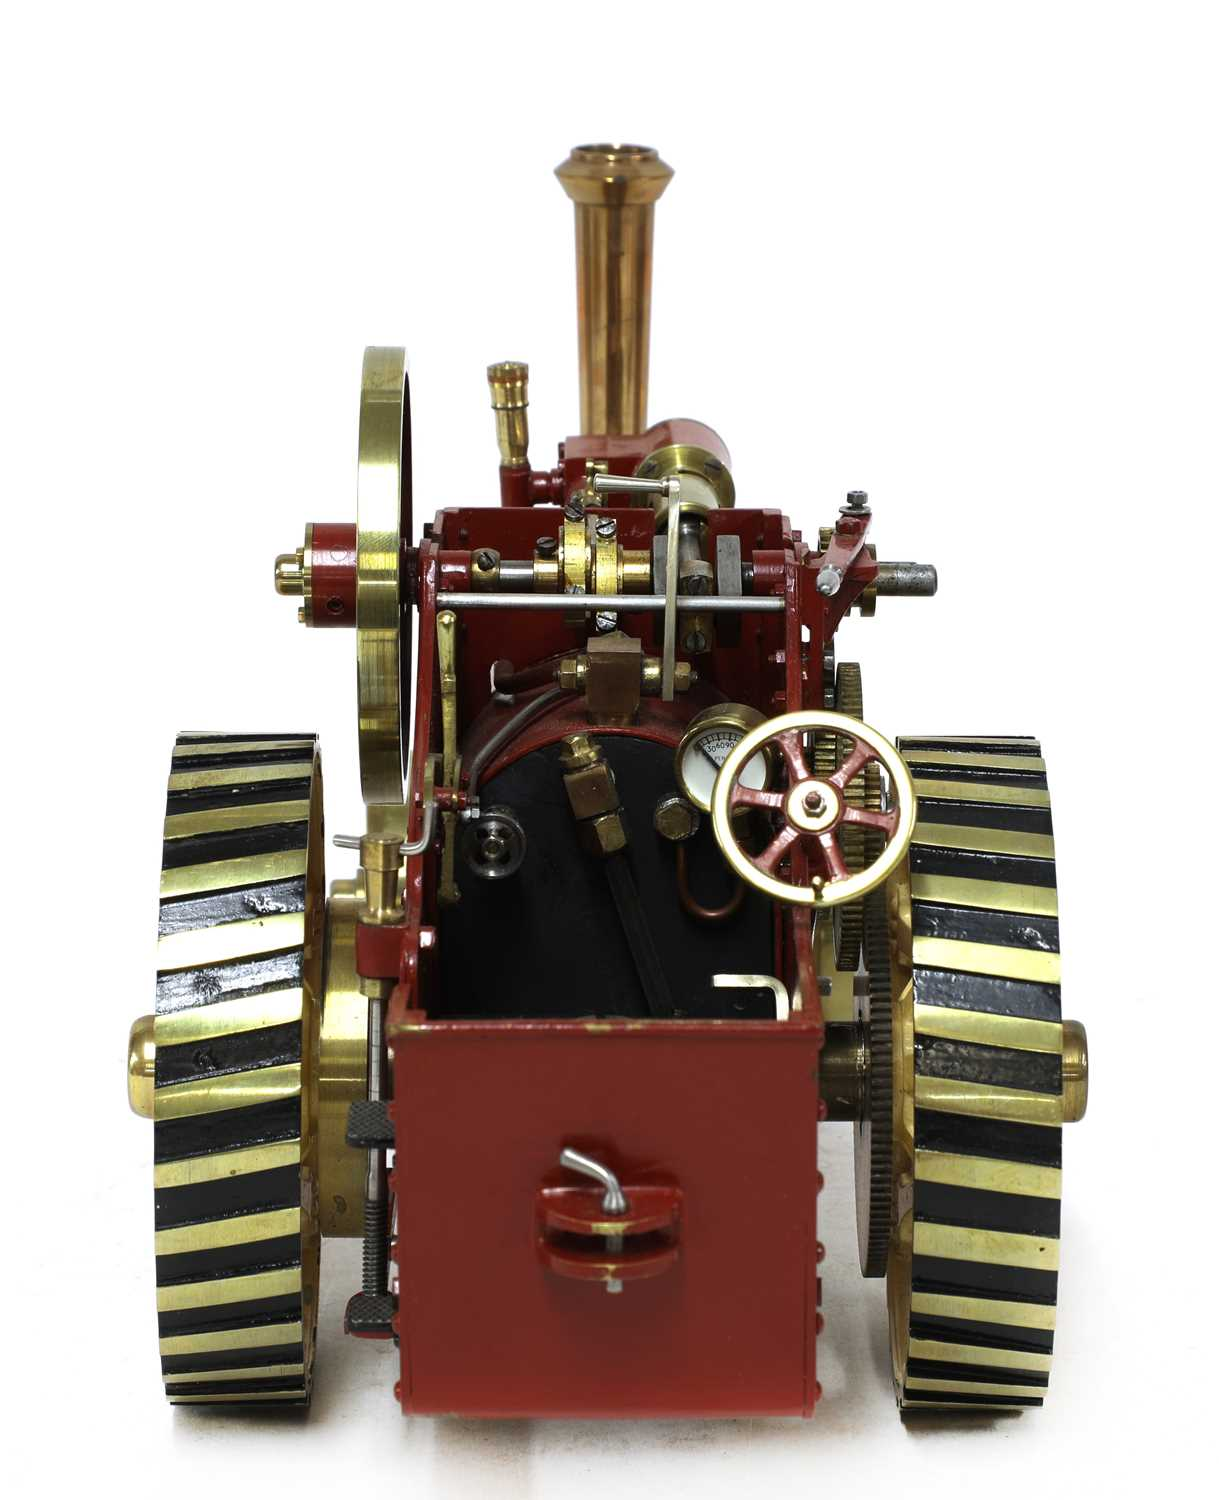 A ¾in scale model Burrell-type live steam traction engine, - Image 4 of 7